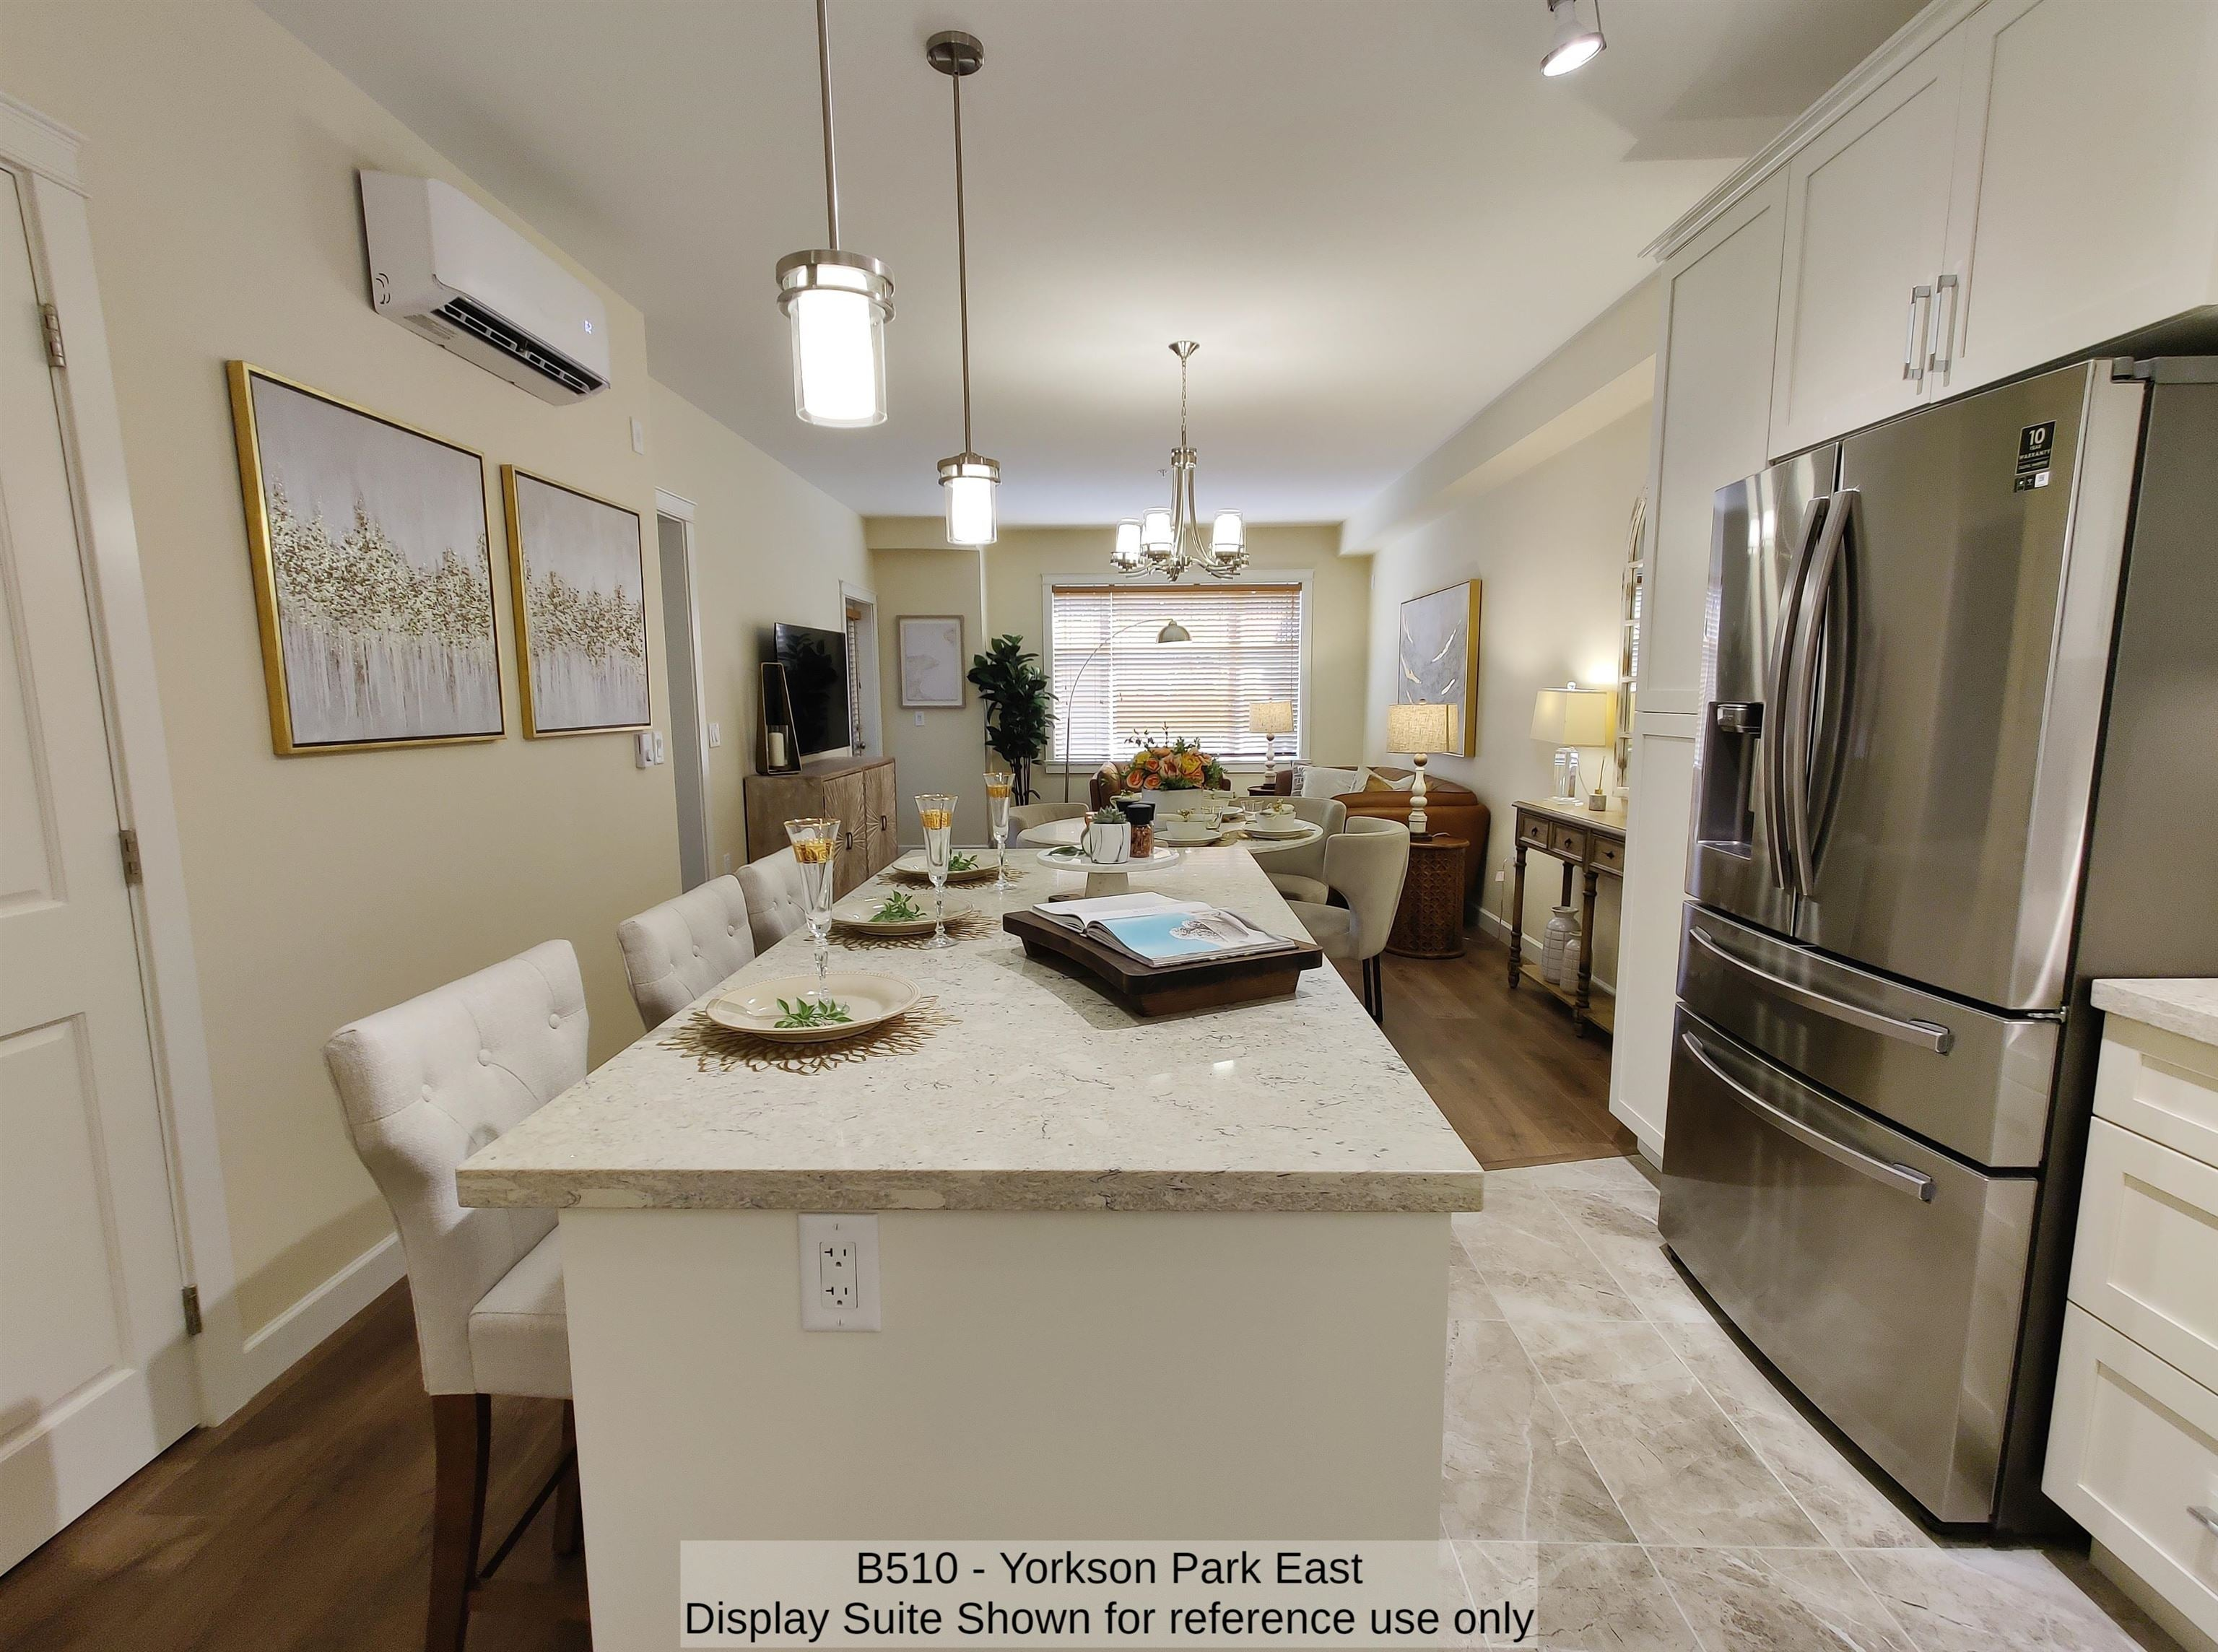 510 8538 203A STREET - Willoughby Heights Apartment/Condo for sale, 1 Bedroom (R2562641) - #5